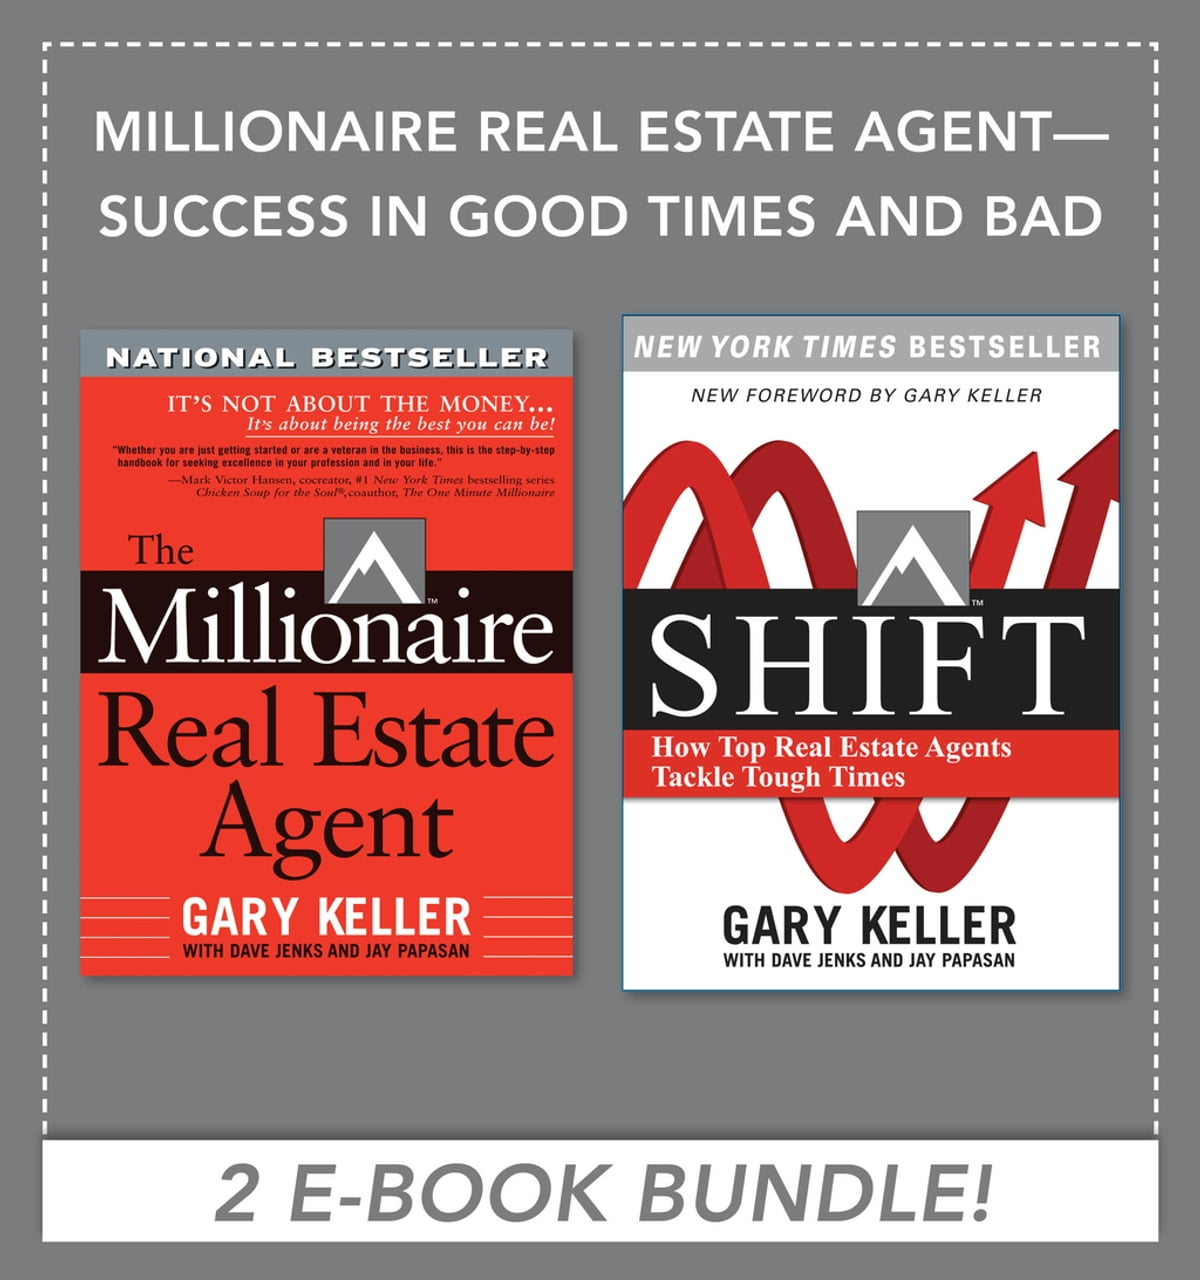 Millionaire Real Estate Agent - Success in Good Times and Bad (EBOOK  BUNDLE) eBook by Dave Jenks - 9780071796514 | Rakuten Kobo